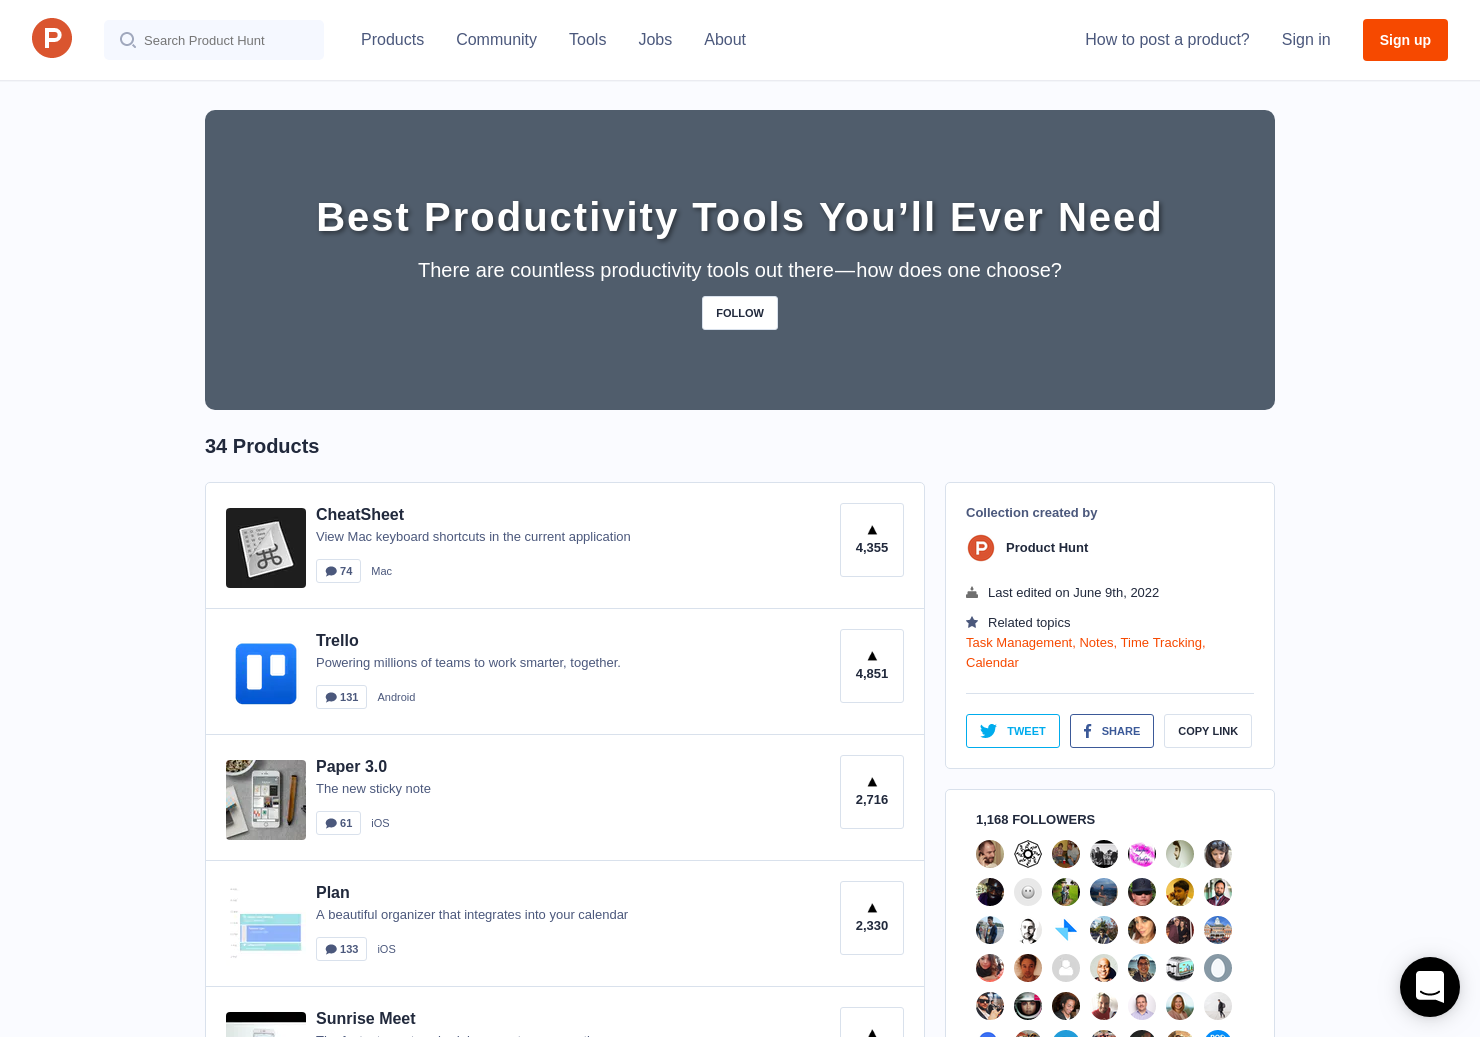 Best Productivity Tools You'll Ever Need | Product Hunt